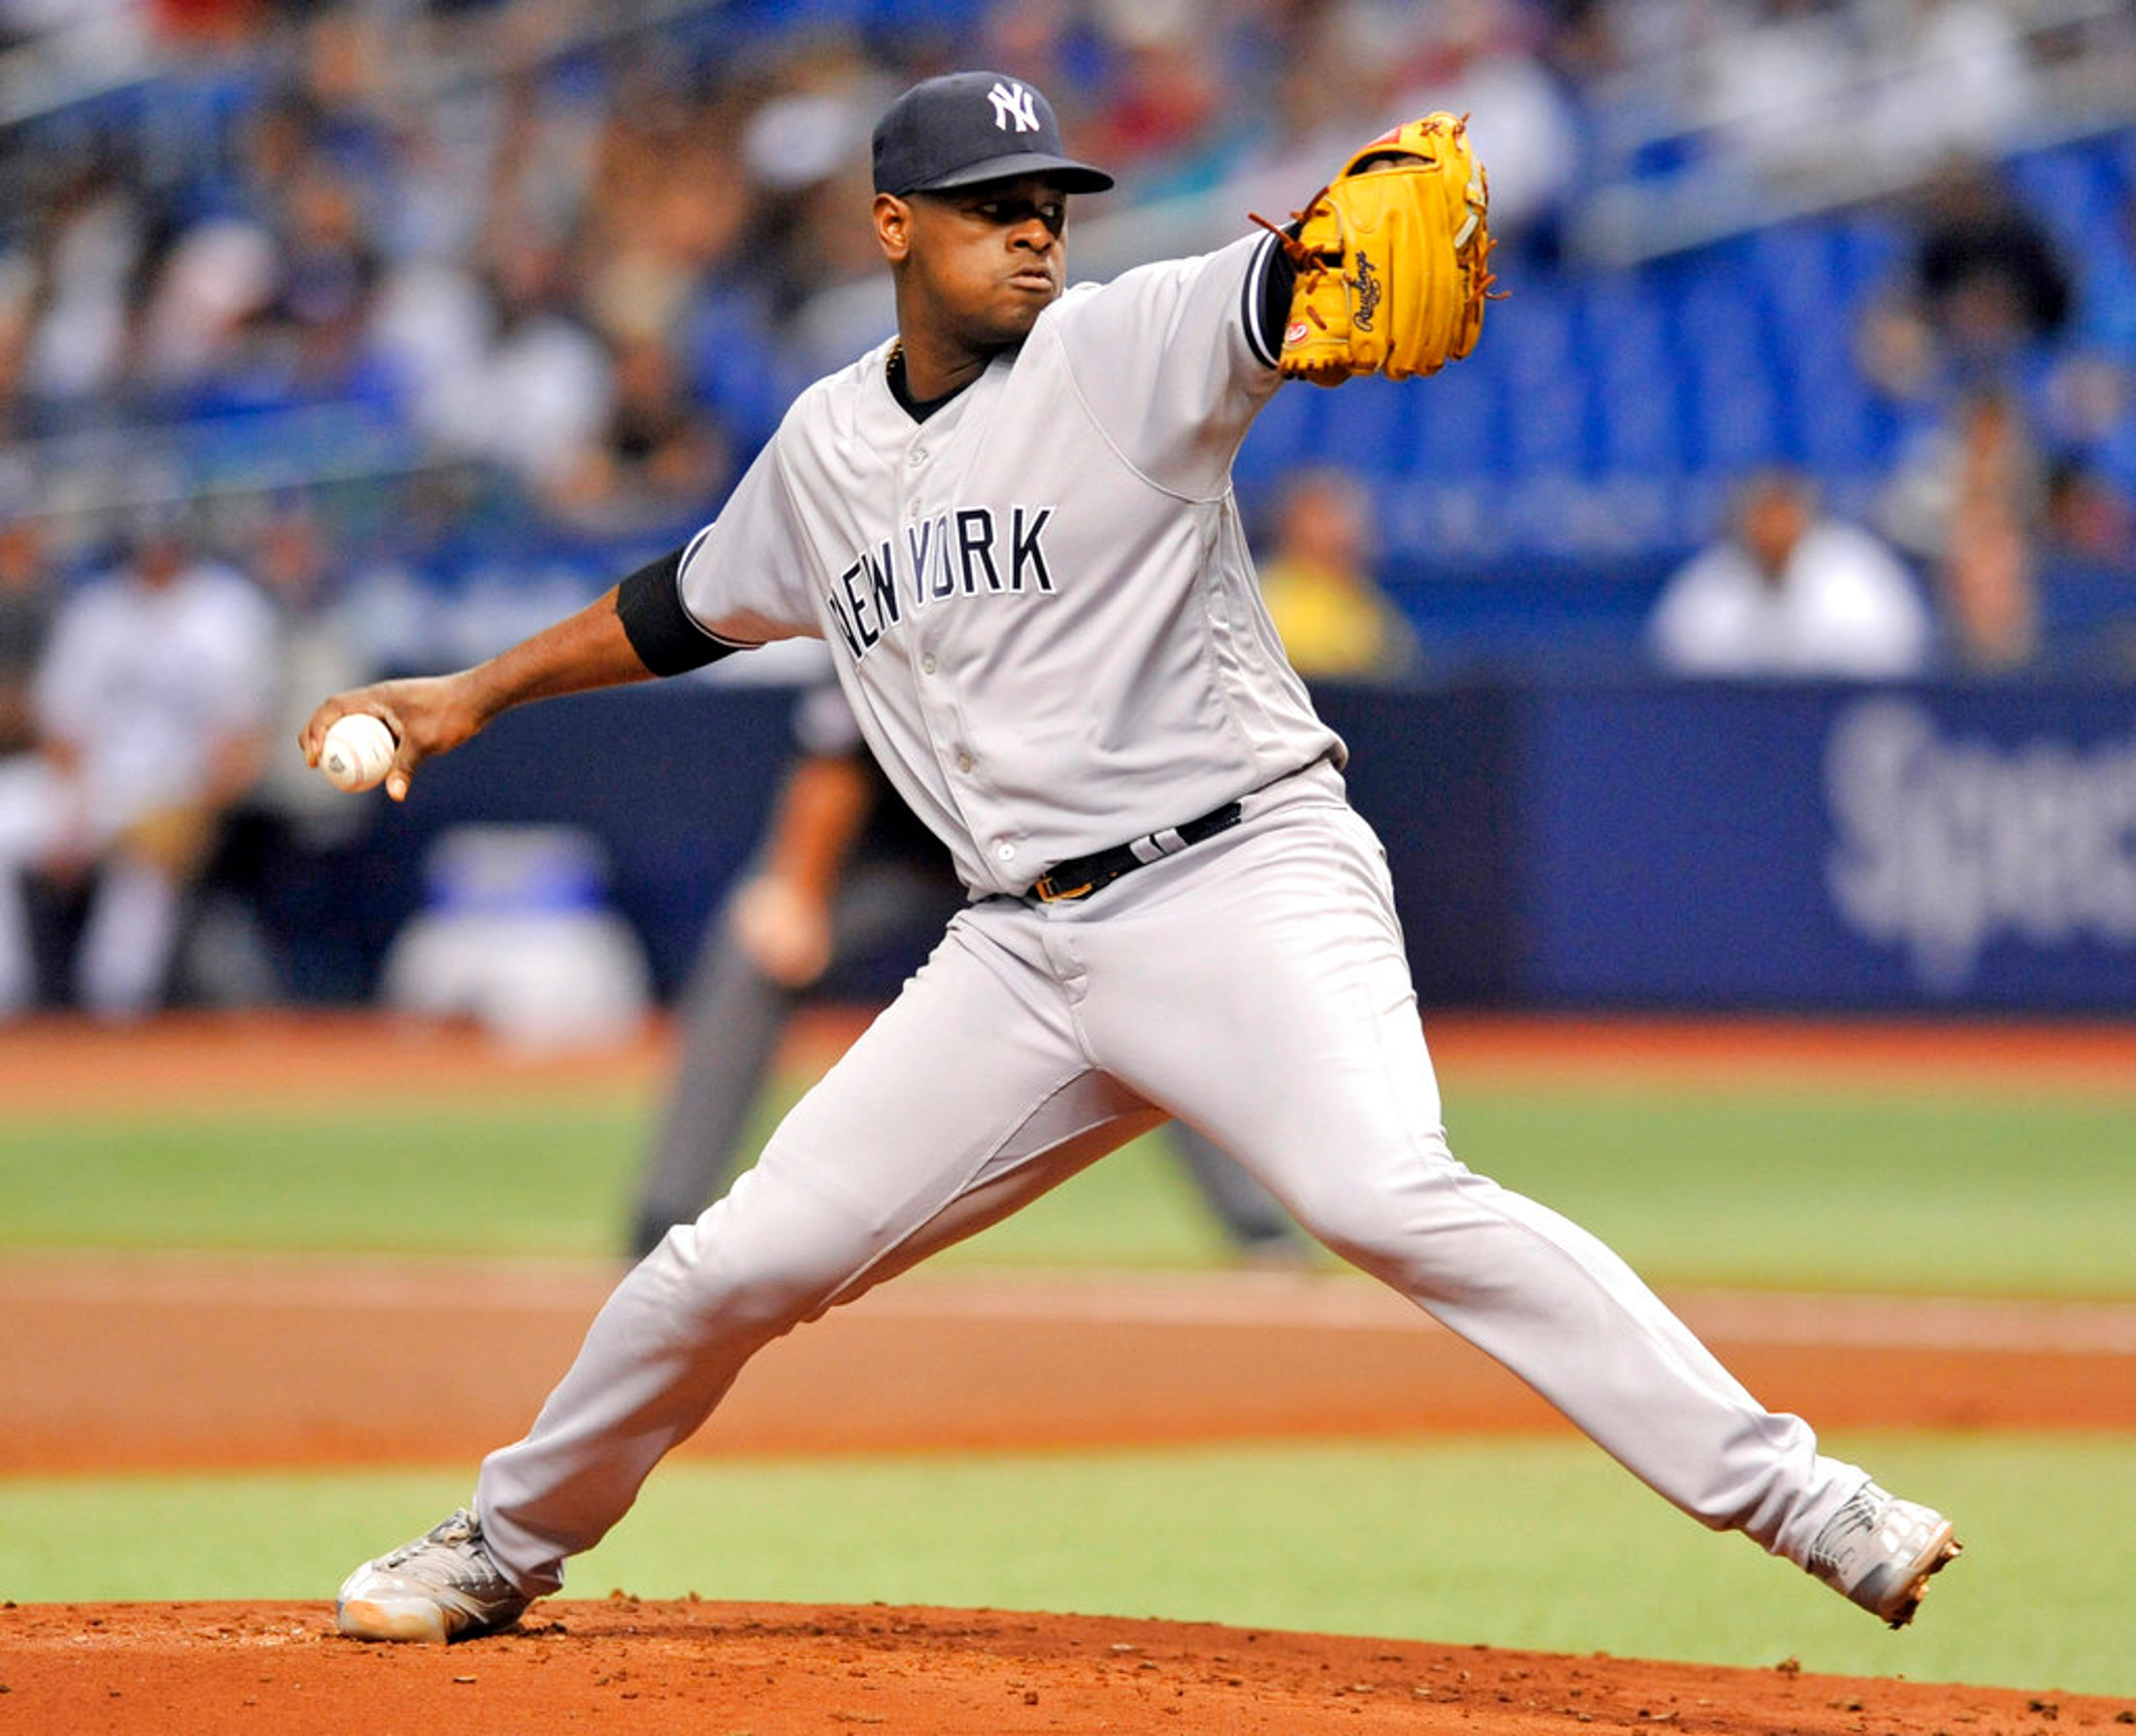 New York Yankees starter Luis Severino pitches against the Tampa Bay Rays during the first inning of a baseball game Tuesday, Sept. 25, 2018, in St. Petersburg, Fla. (AP Photo/Steve Nesius)